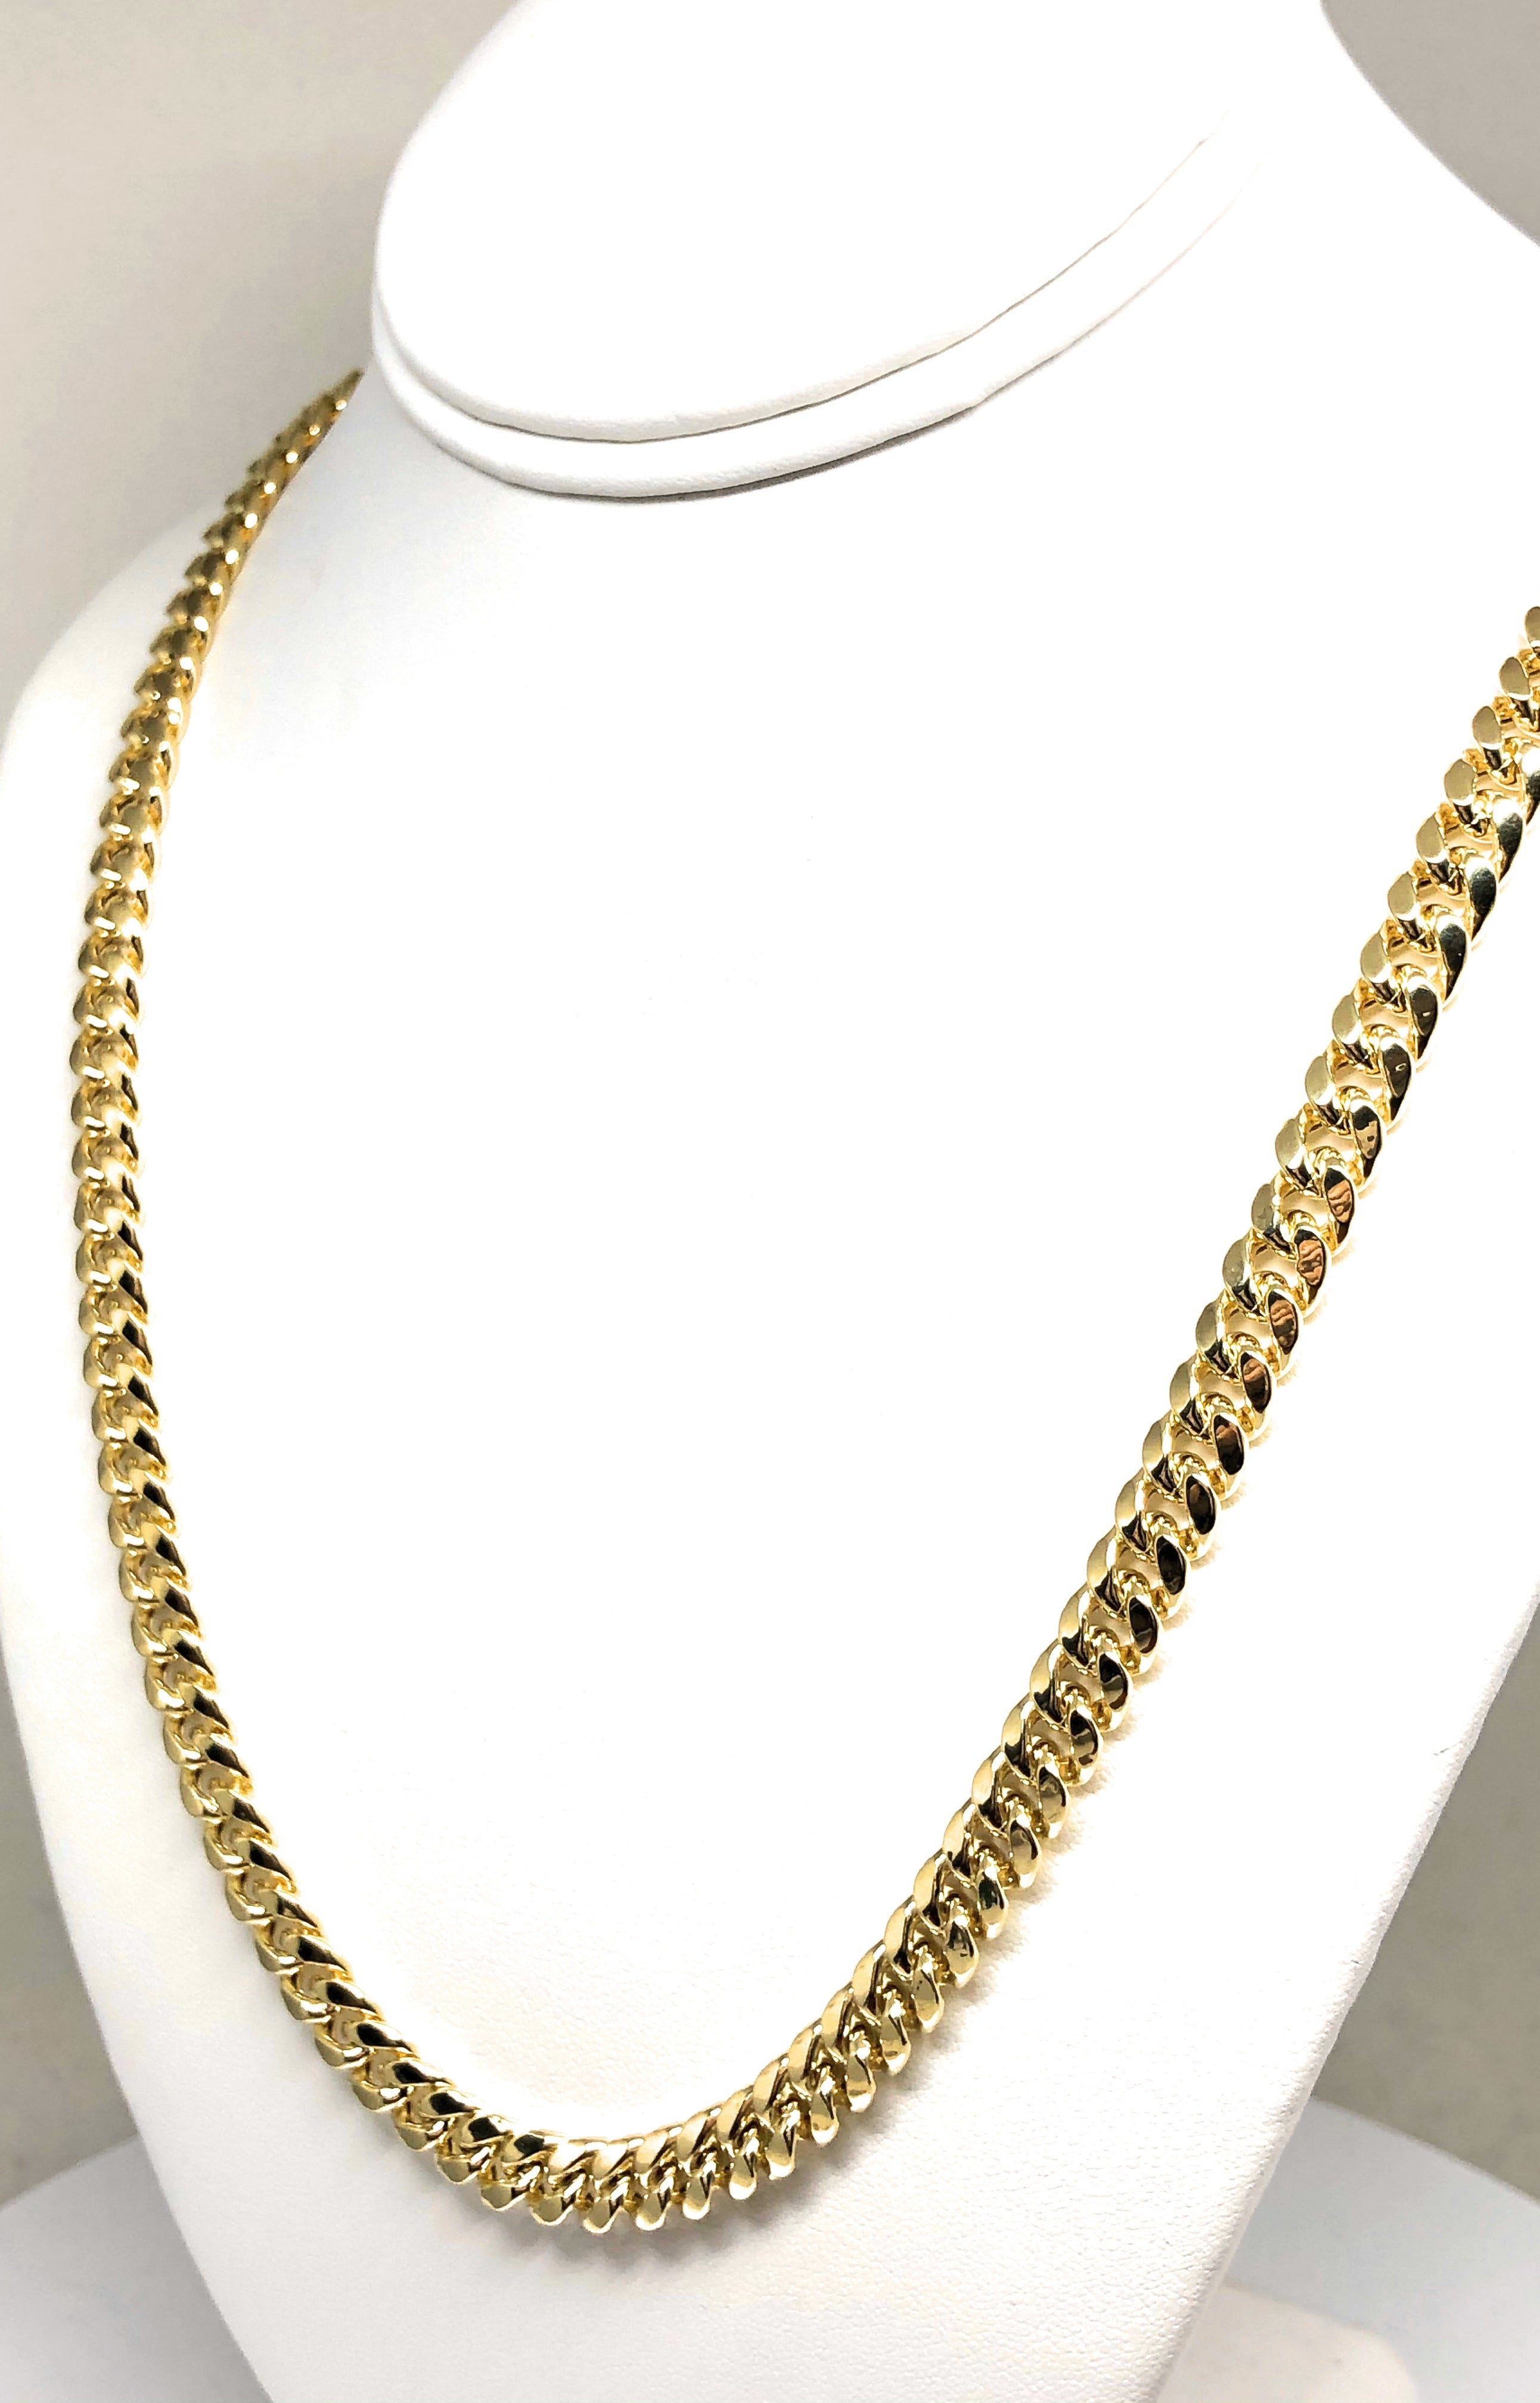 10k Solid Gold Miami Cuban Link Chain 28-30 inches 8mm Box Lock (Semi-Hollow) 41-44g